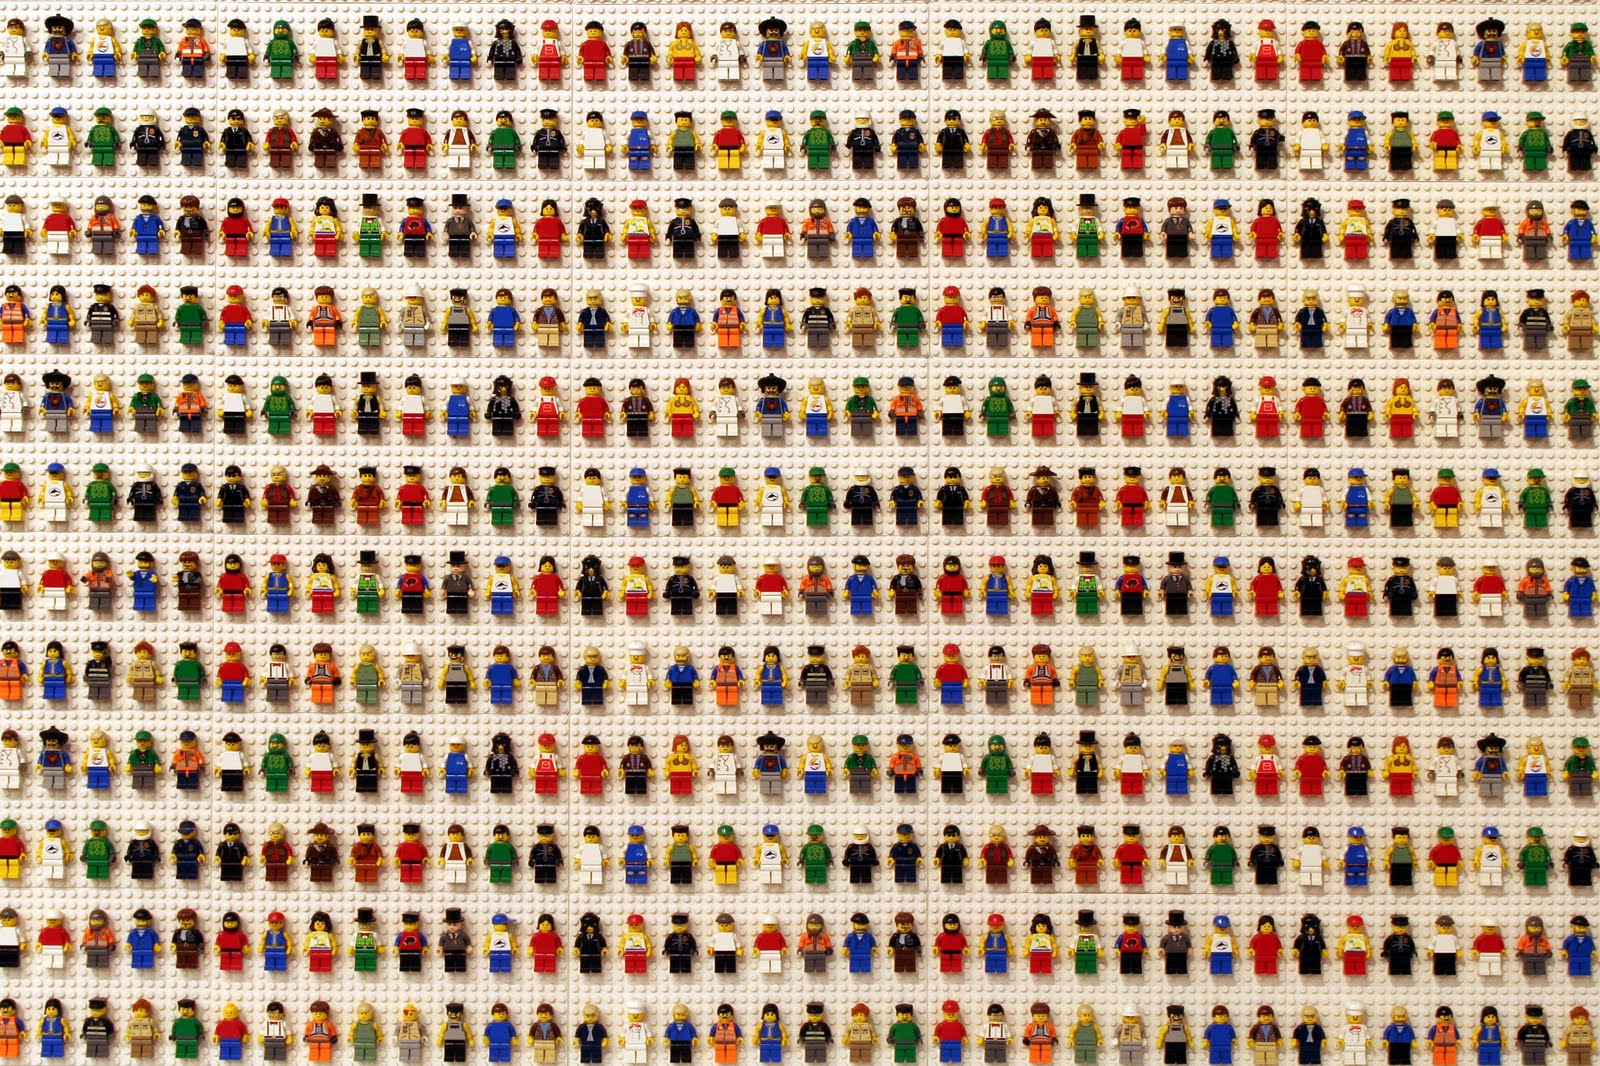 Lego Samples HD Wallpapers Stock Photos| HD Wallpapers